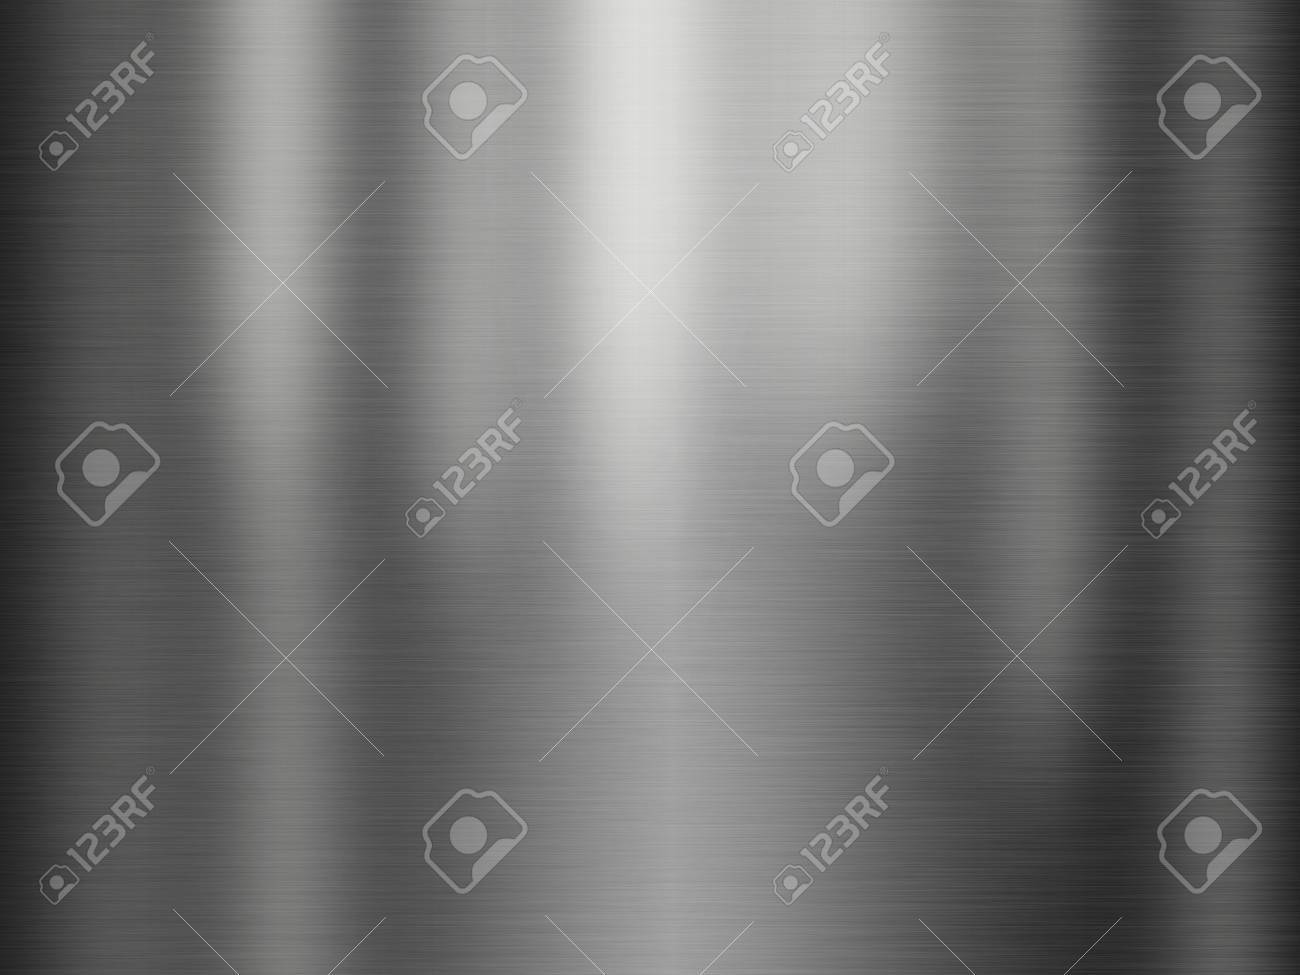 Stainless steel texture or metal texture background Banque d'images - 75076731